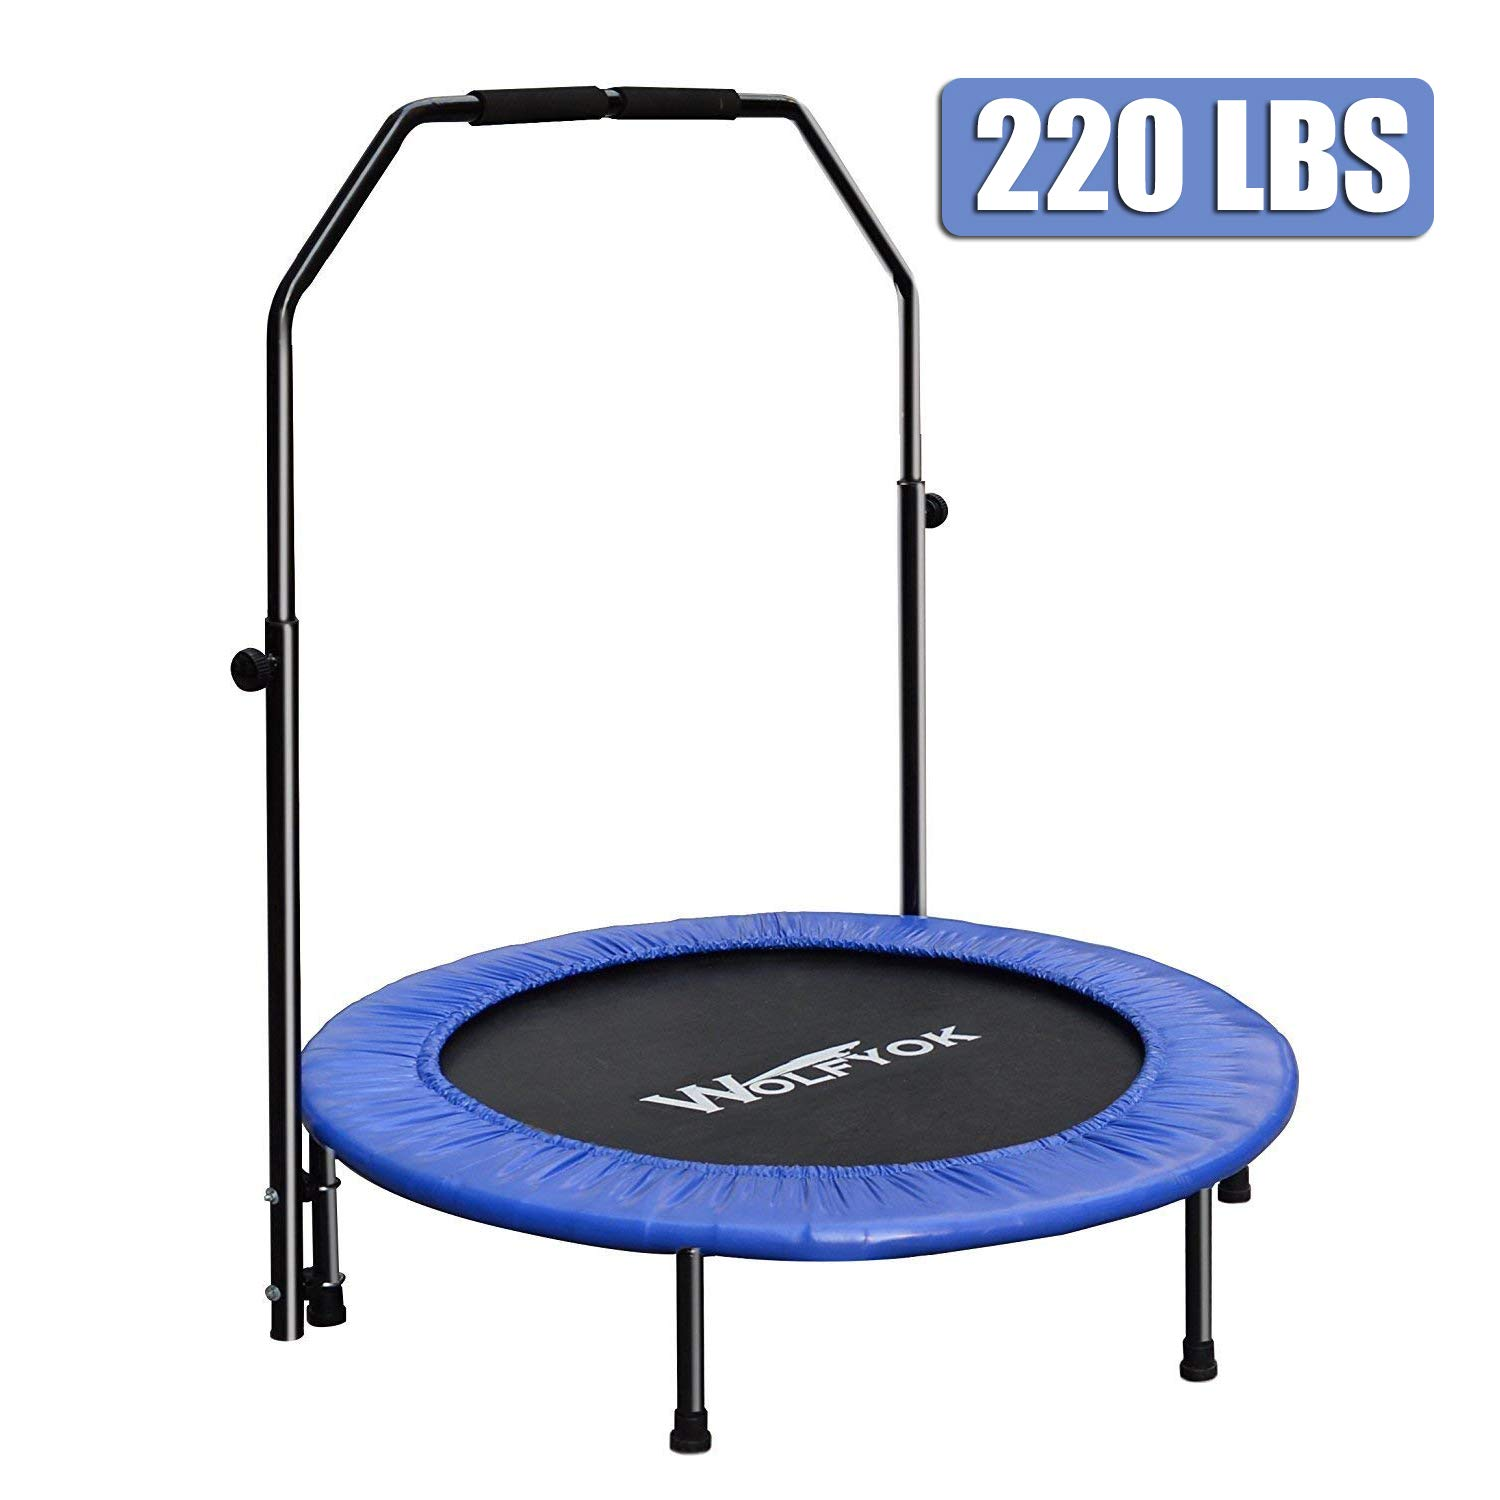 Wolfyok Exercise Trampoline with Safety Pad Adjustable Handle Bar Portable & Foldable Rebounder for Adults Kids Body Fitness Training Workout Max Load 220 lbs by Wolfyok